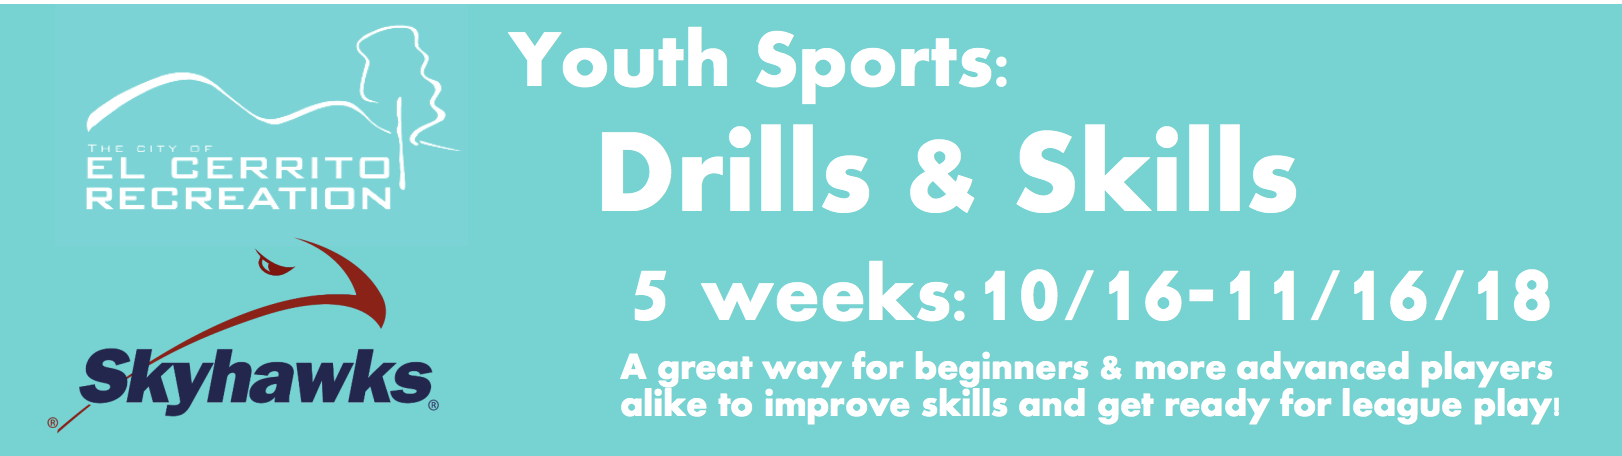 Youth Sports Drills and Skills